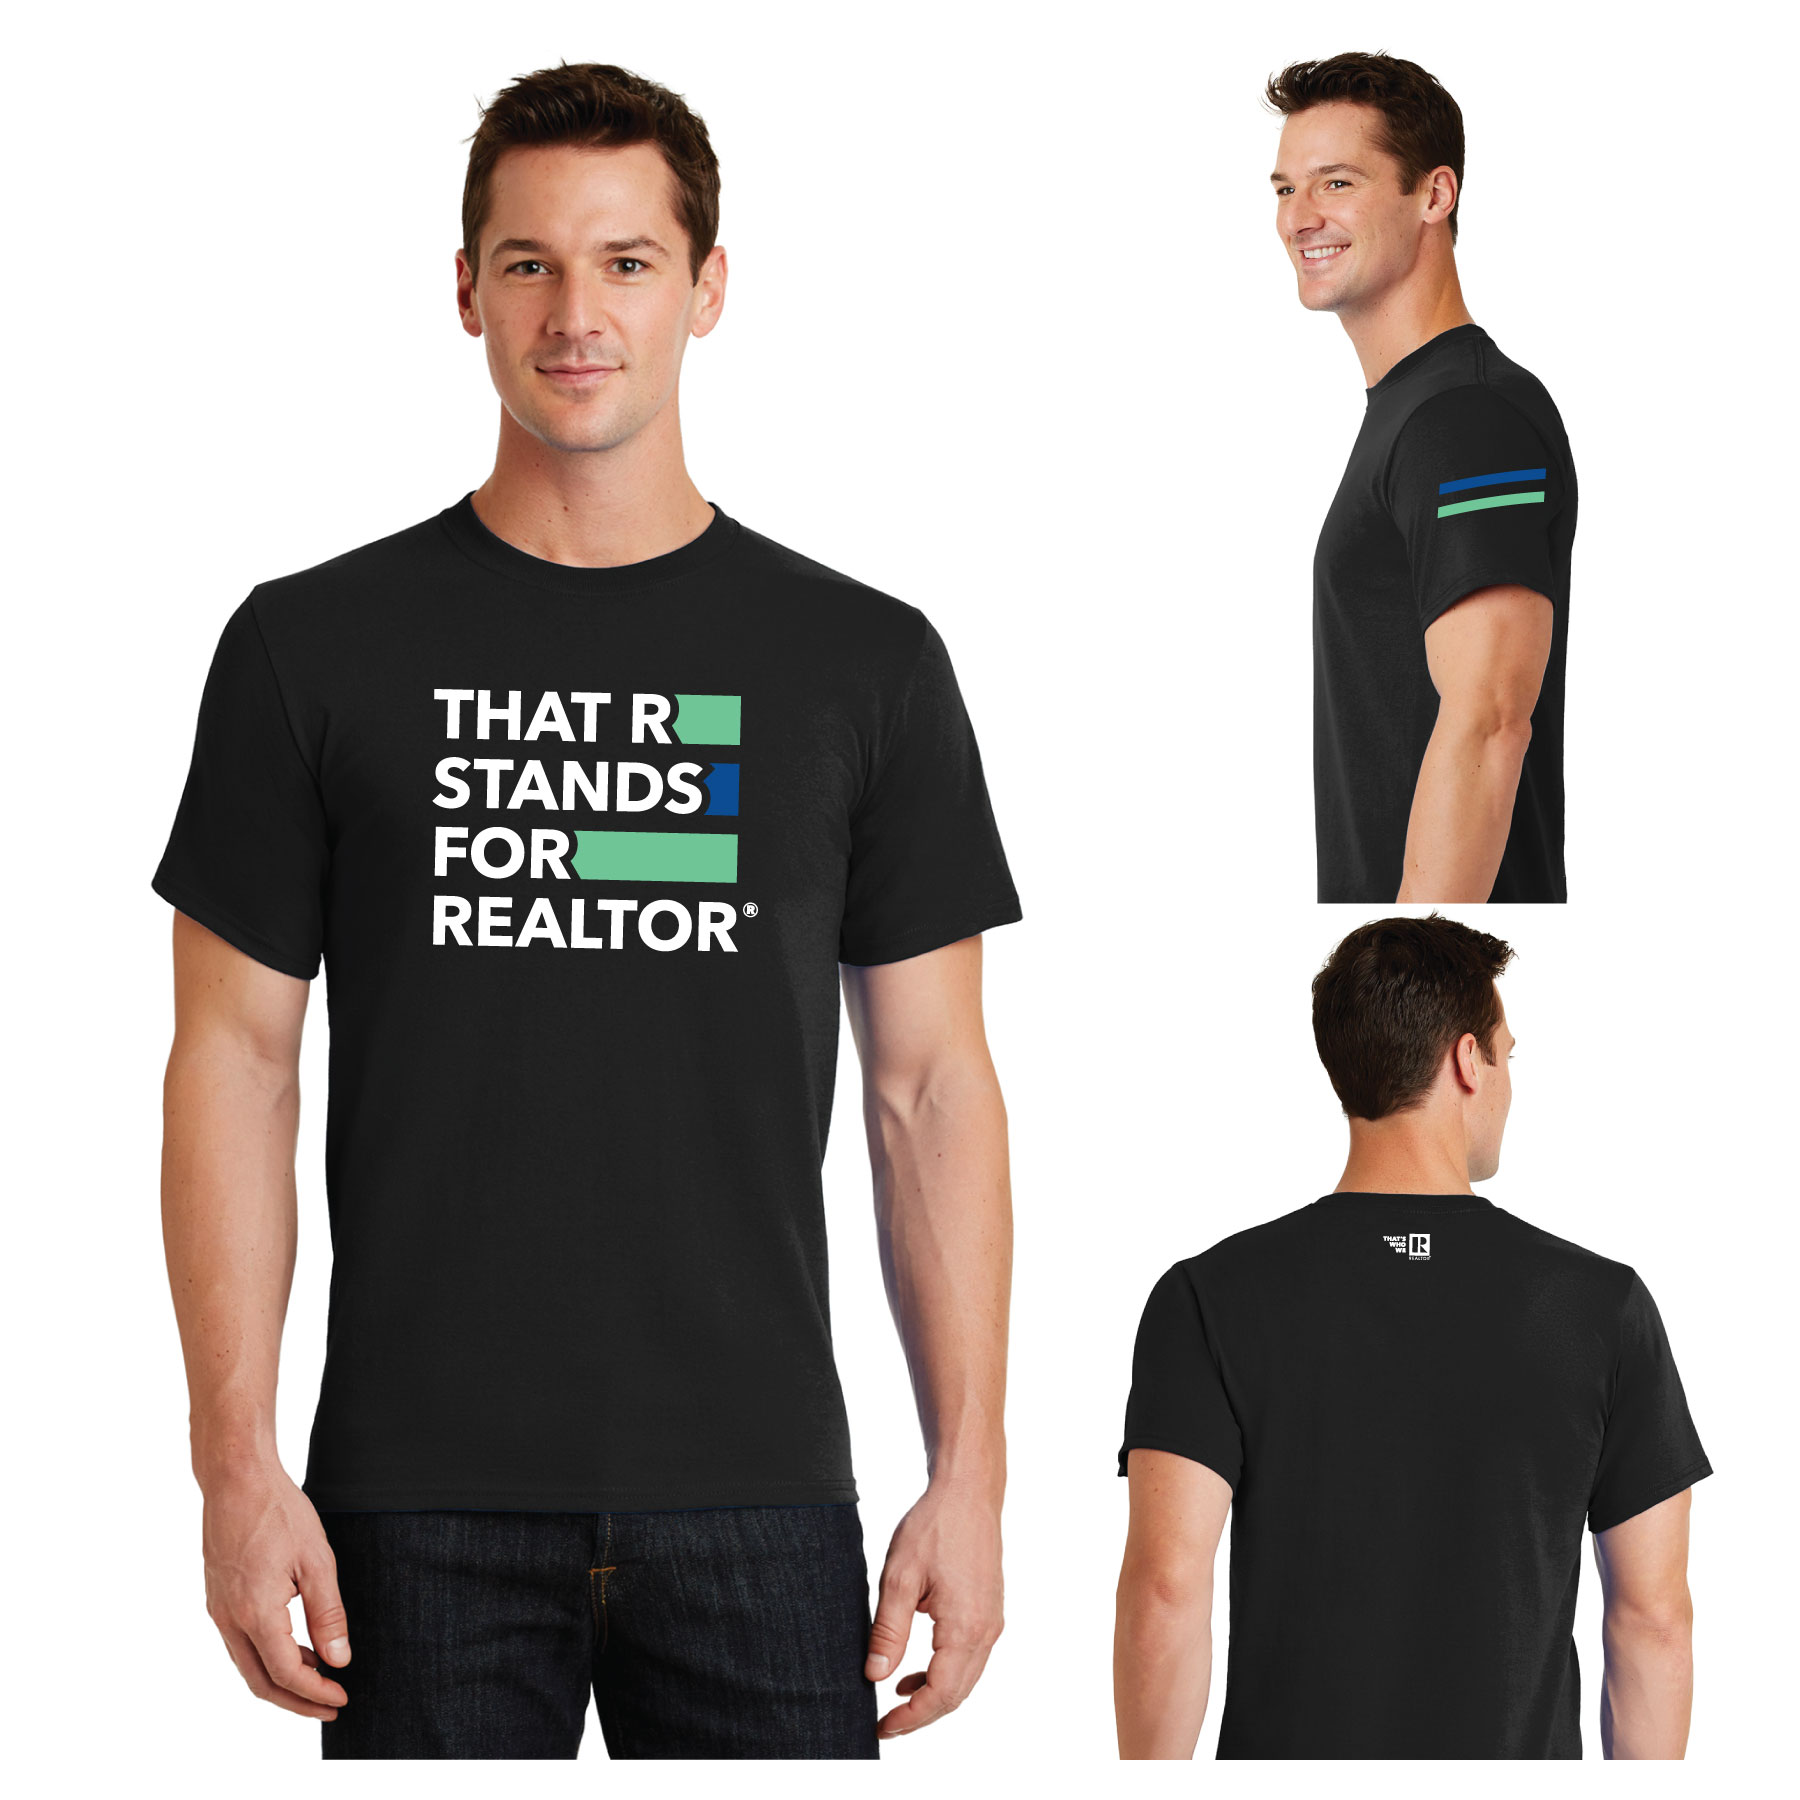 """That R Stands for REALTOR®"" Value Tee Shirt TRSFR,twwr,ThatsWhoWeR,That's,TWWR,ThatWho,That'sWho,Twwr,Thats,Whos,We,Ares,Tees,T-shirt,Tee,Casual,Values,Tees,NewEra,Longs,Sleeves"